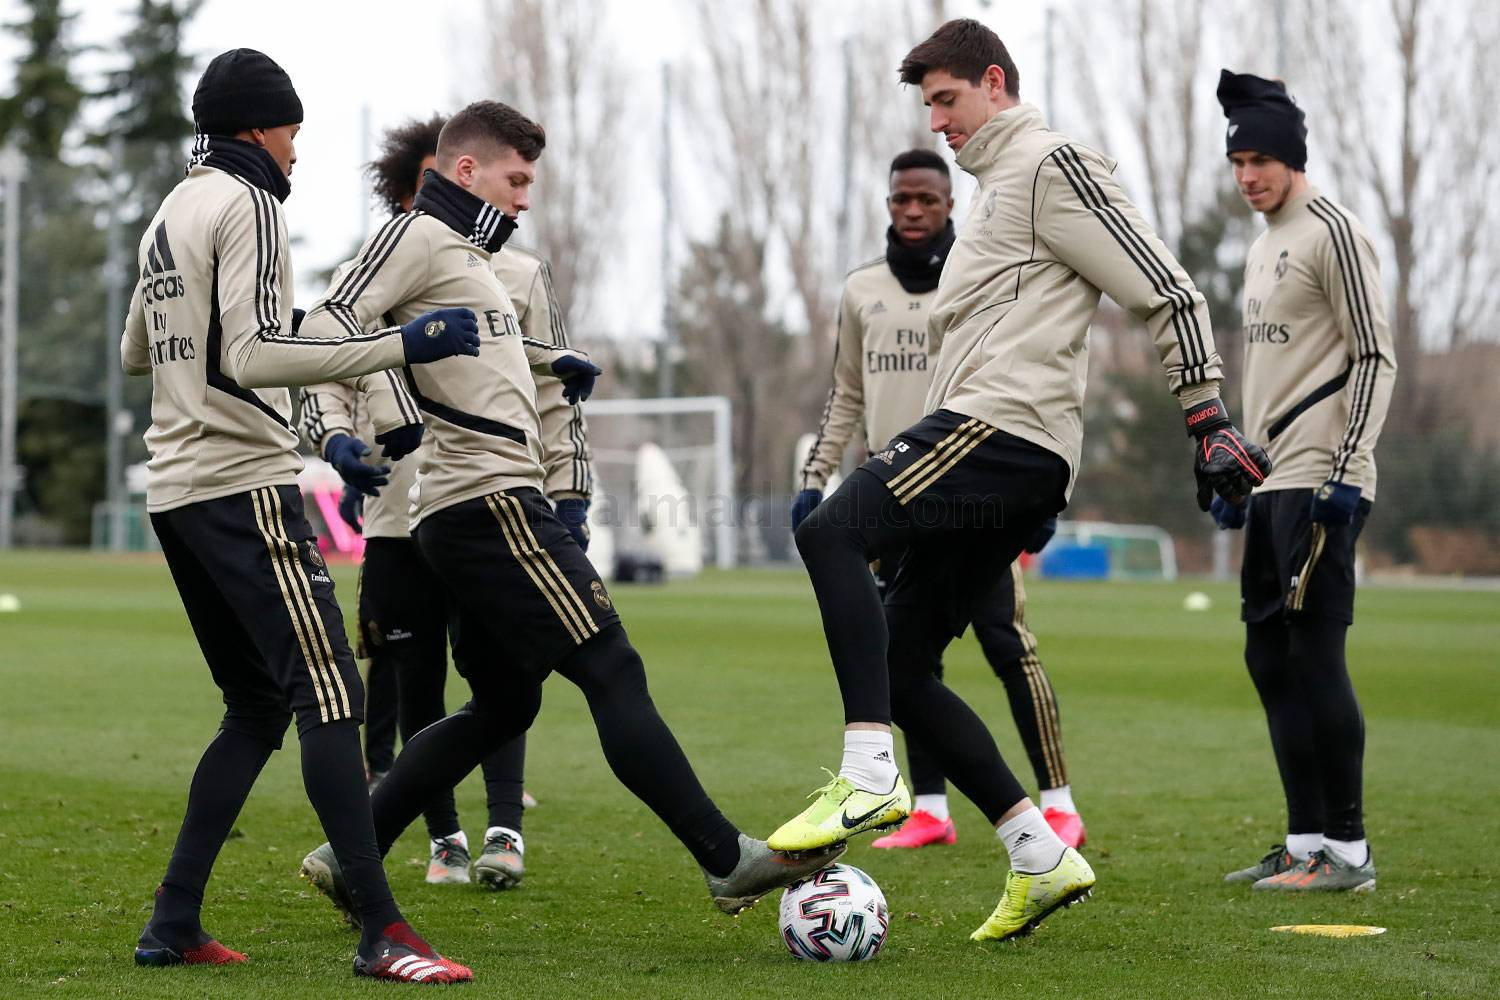 Real Madrid - Entrenamiento del Real Madrid  - 21-01-2020